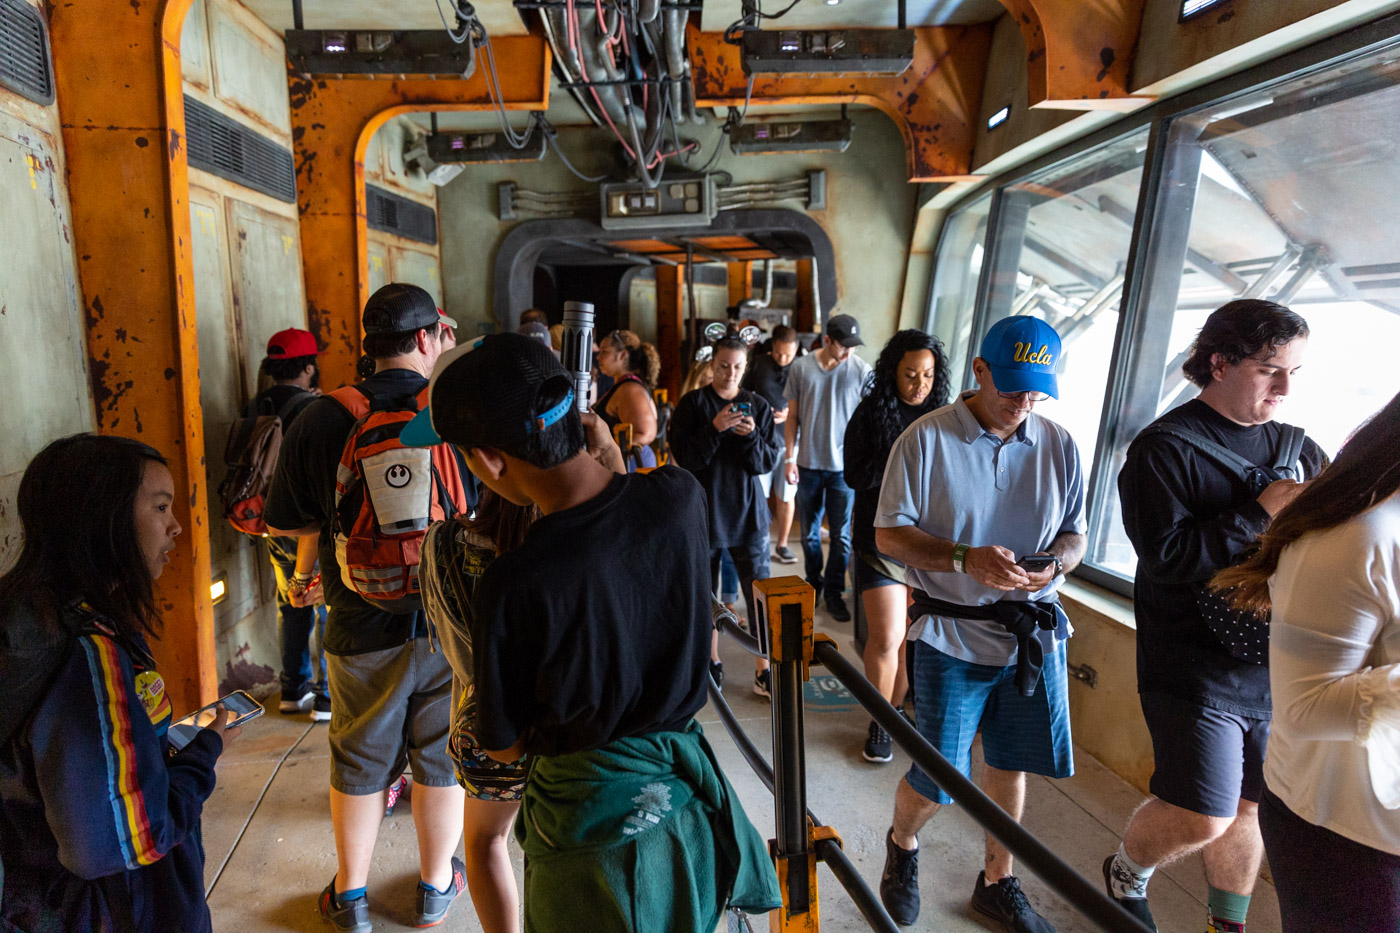 Smuggler's Run Queue inside Star Wars Land at Disneyland. Galaxy's Edge at Disneyland